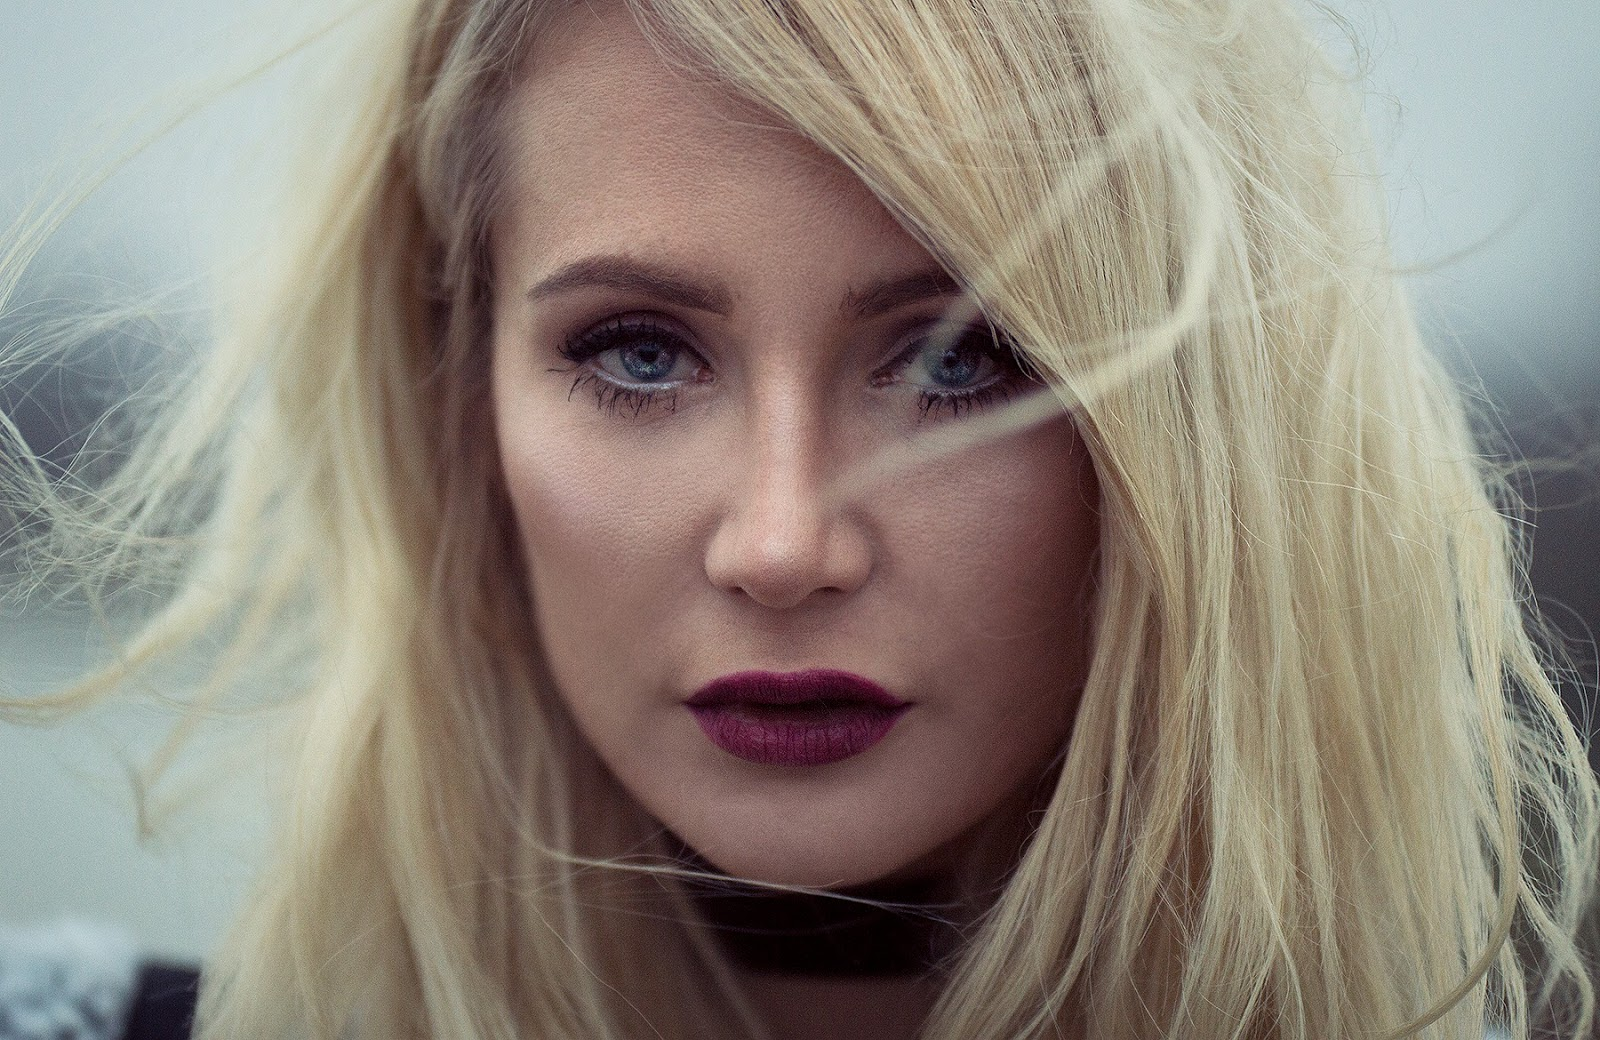 Portrait shoot close up with blonde fashionblogger a heart for fashion